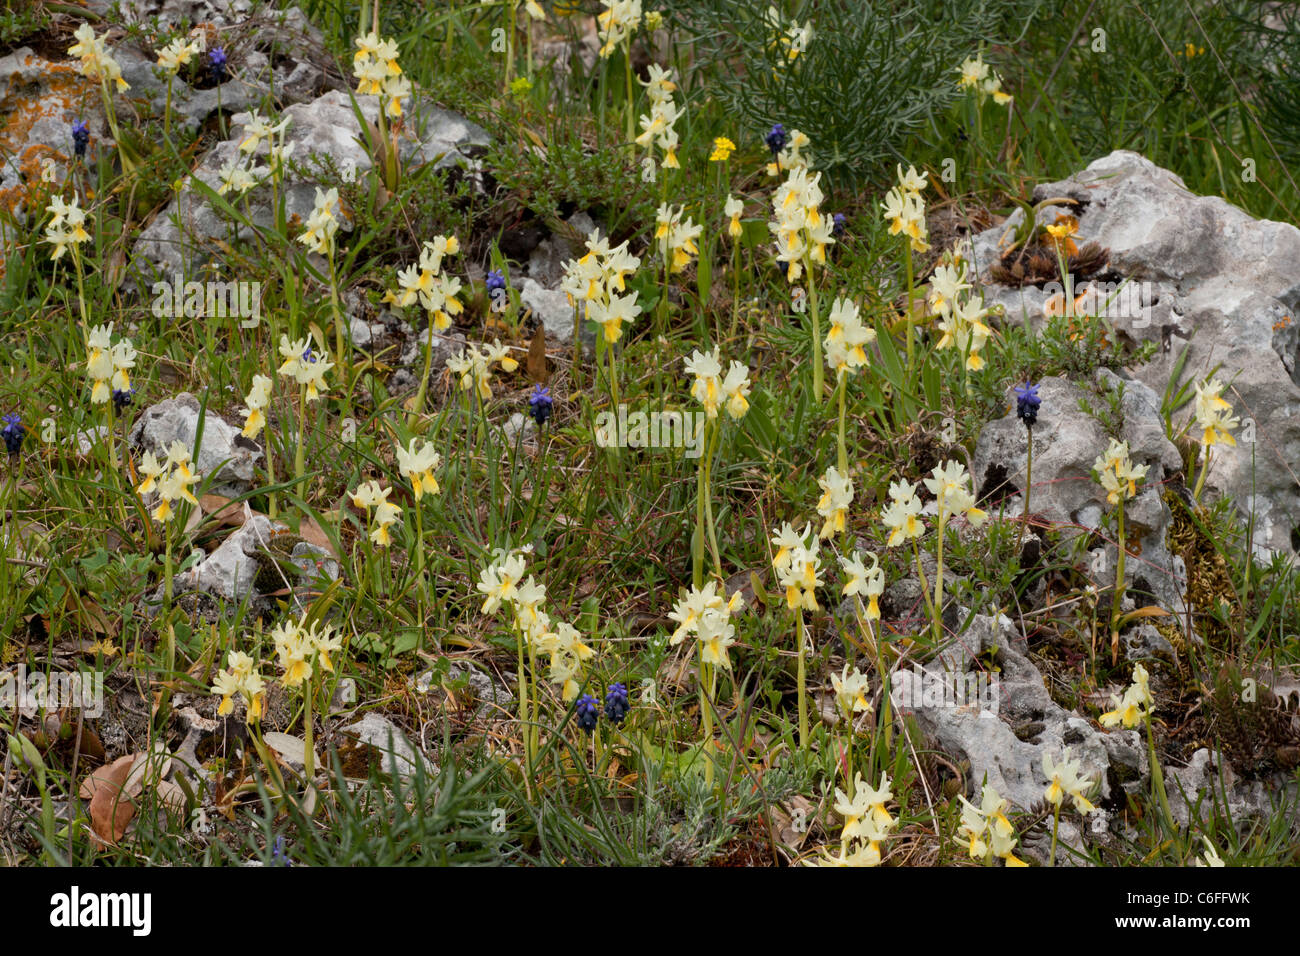 Mass of Few-flowered Orchids Orchis pauciflora with grape hyacinths etc, Gargano Peninsula, Italy. - Stock Image